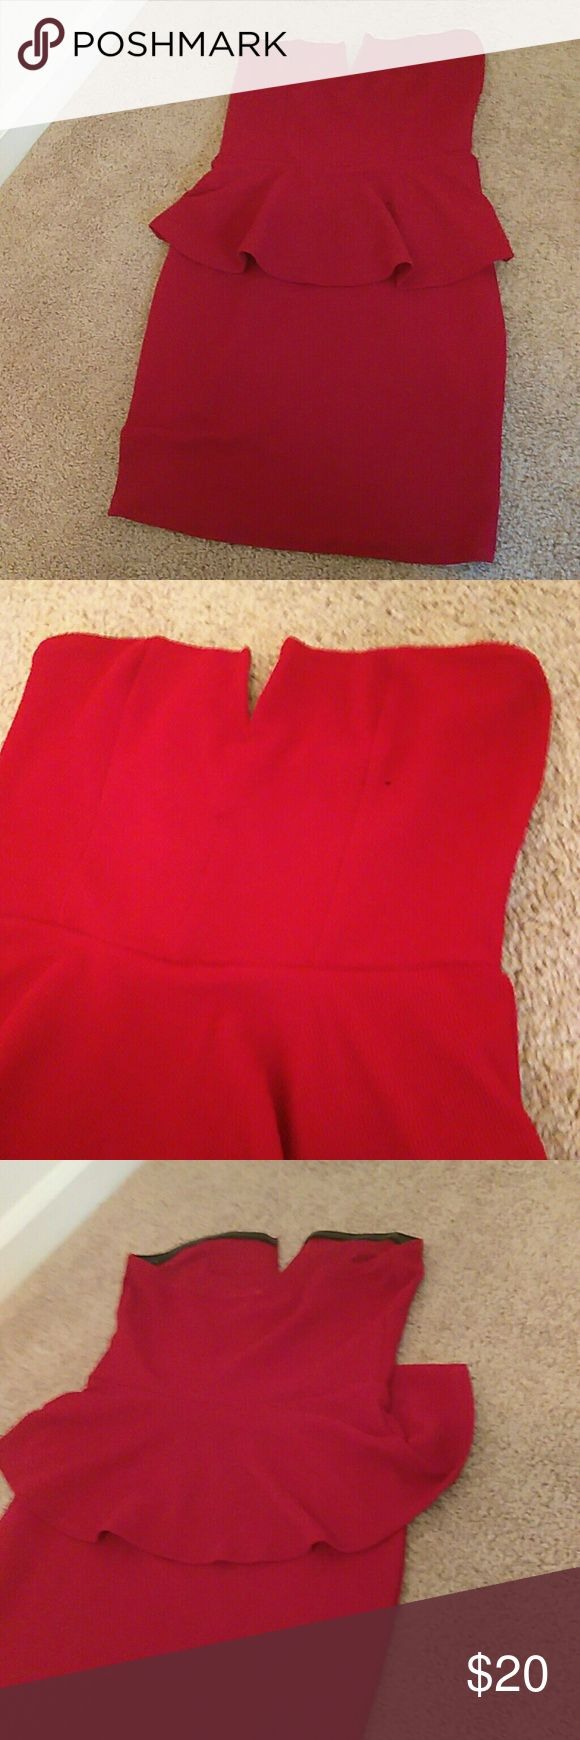 Red peplum dress Red peplum dress. Never worn. Only tried on. Bought it for graduation and never wore it. Charlotte Russe Dresses Strapless